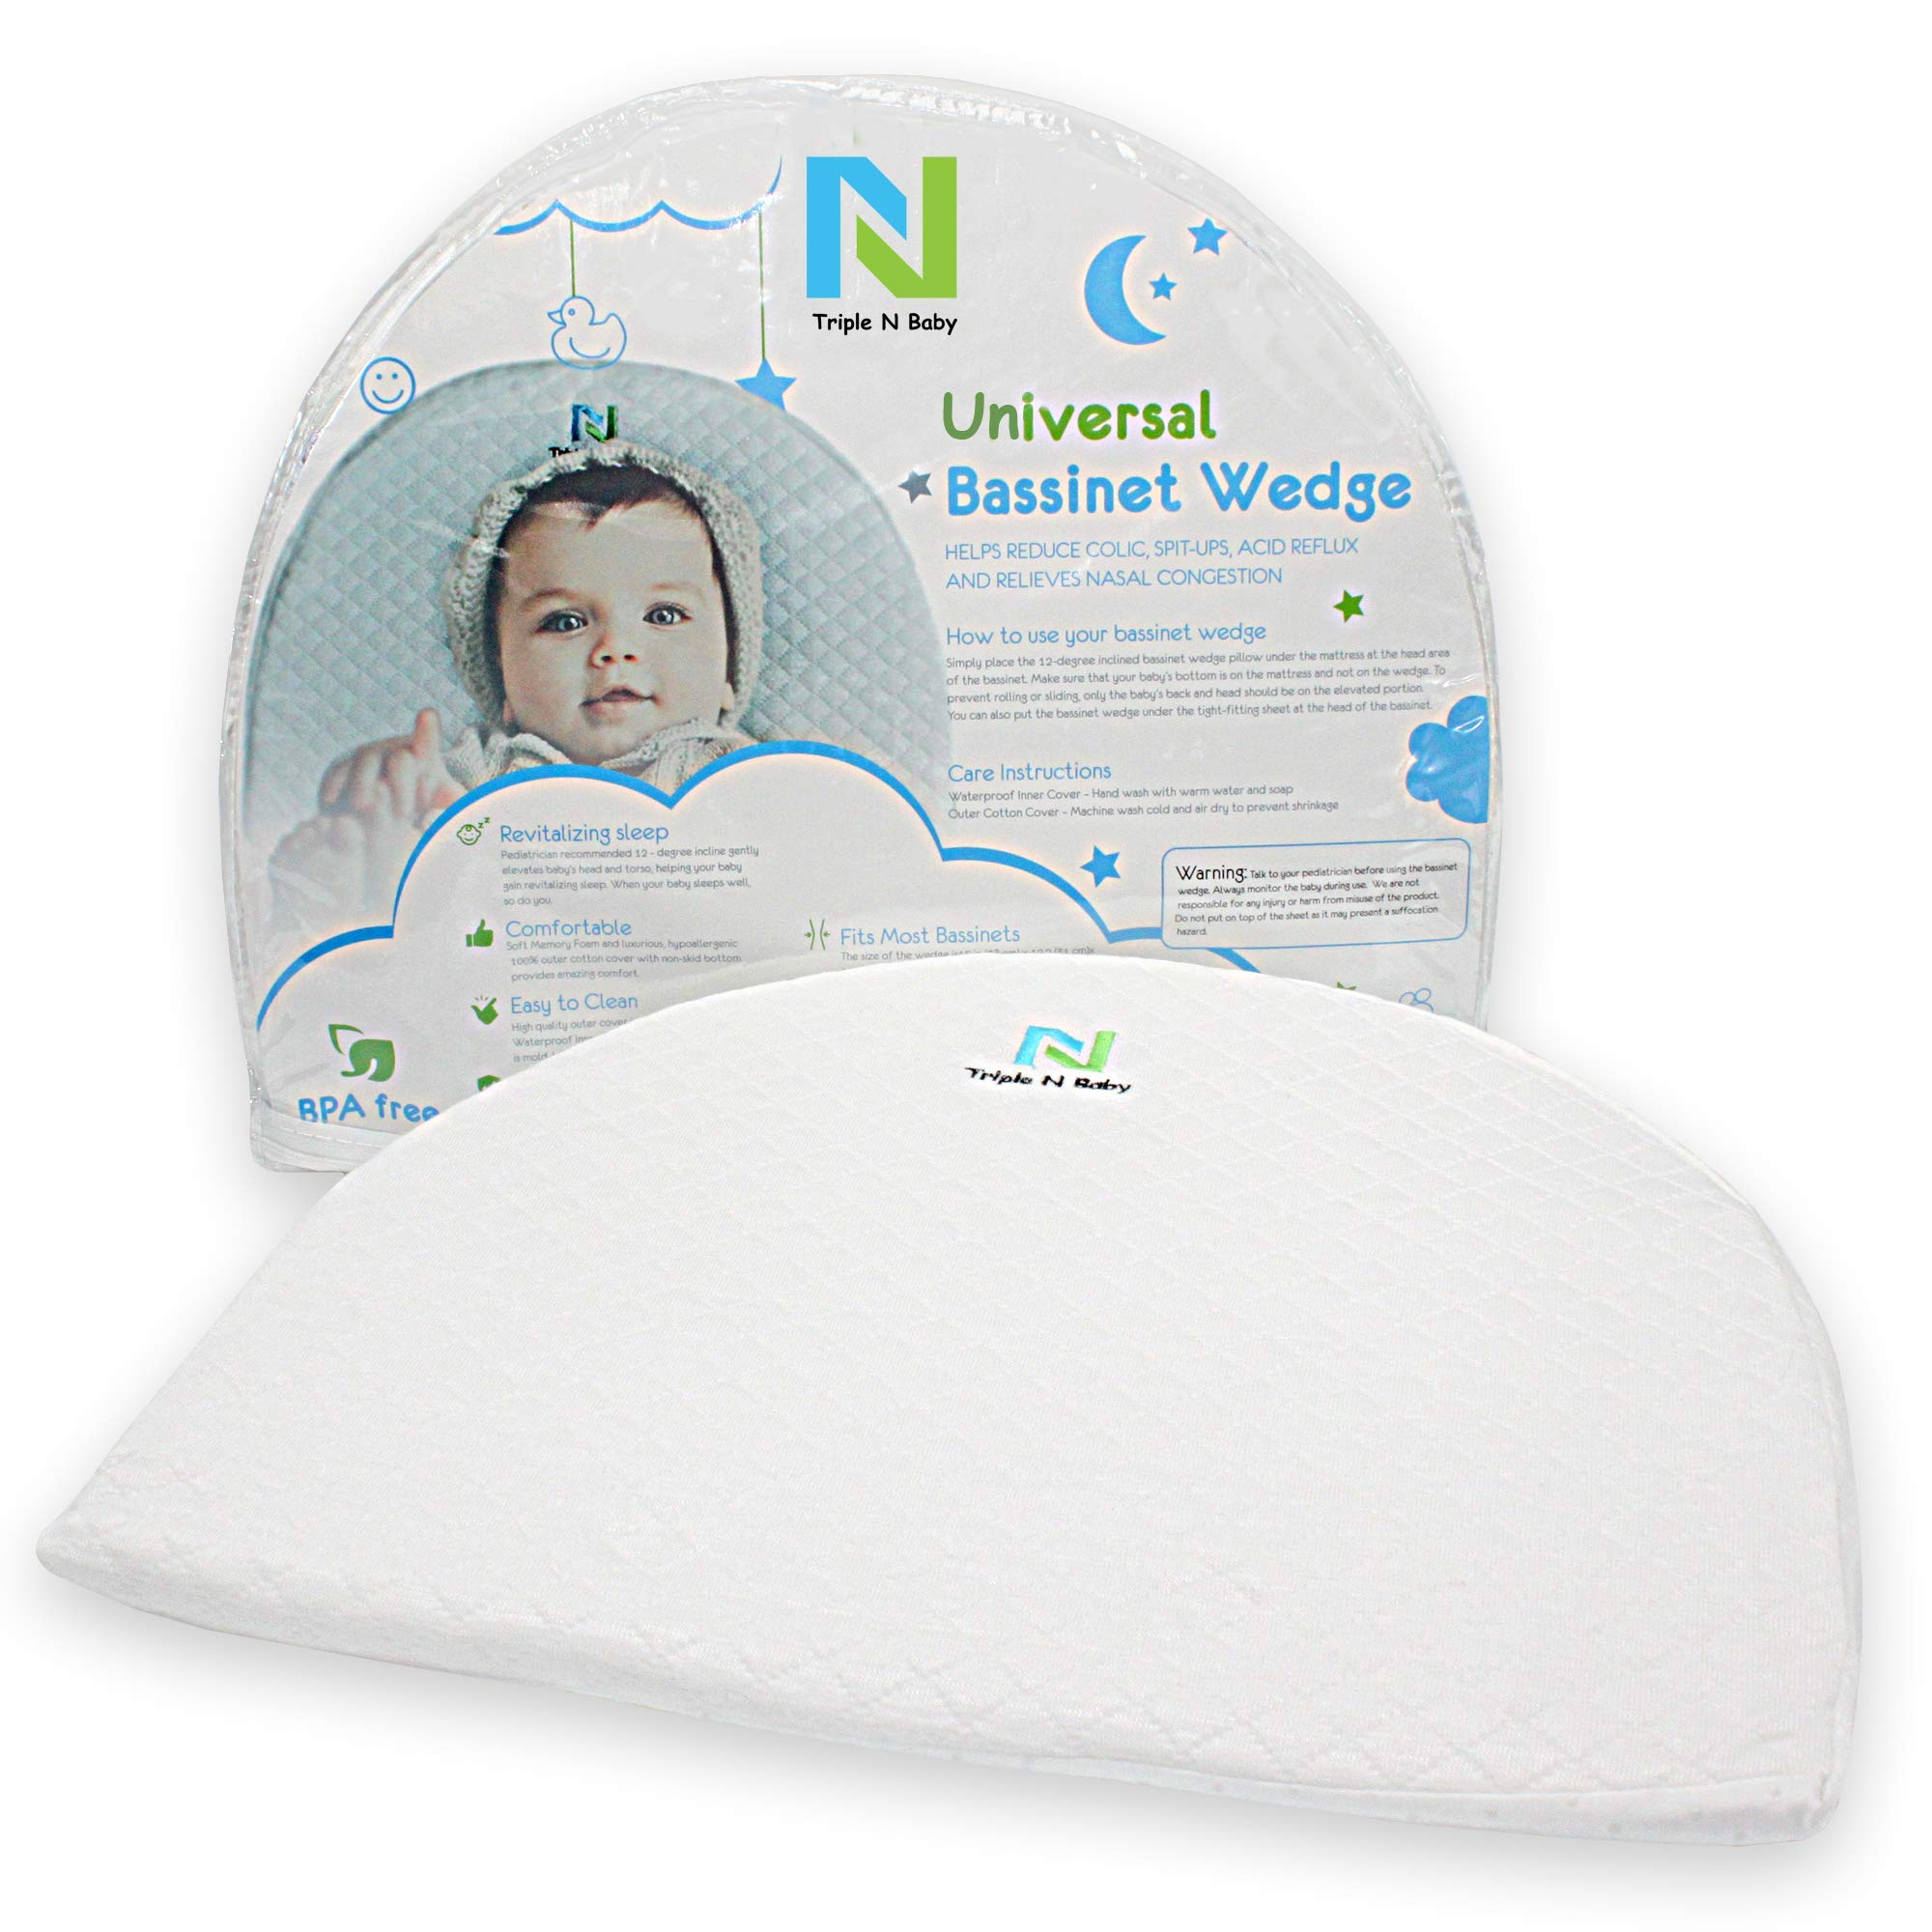 Baby Bassinet Wedge for Reflux Relief 12-Degree Incline Sleep Positioner Elevated Pillow for Newborn Infant with Dual Cover Ideal Baby Shower Gift Anti Colic & Congestion Sleeper Mattress Insert Wedge by Triple N Baby